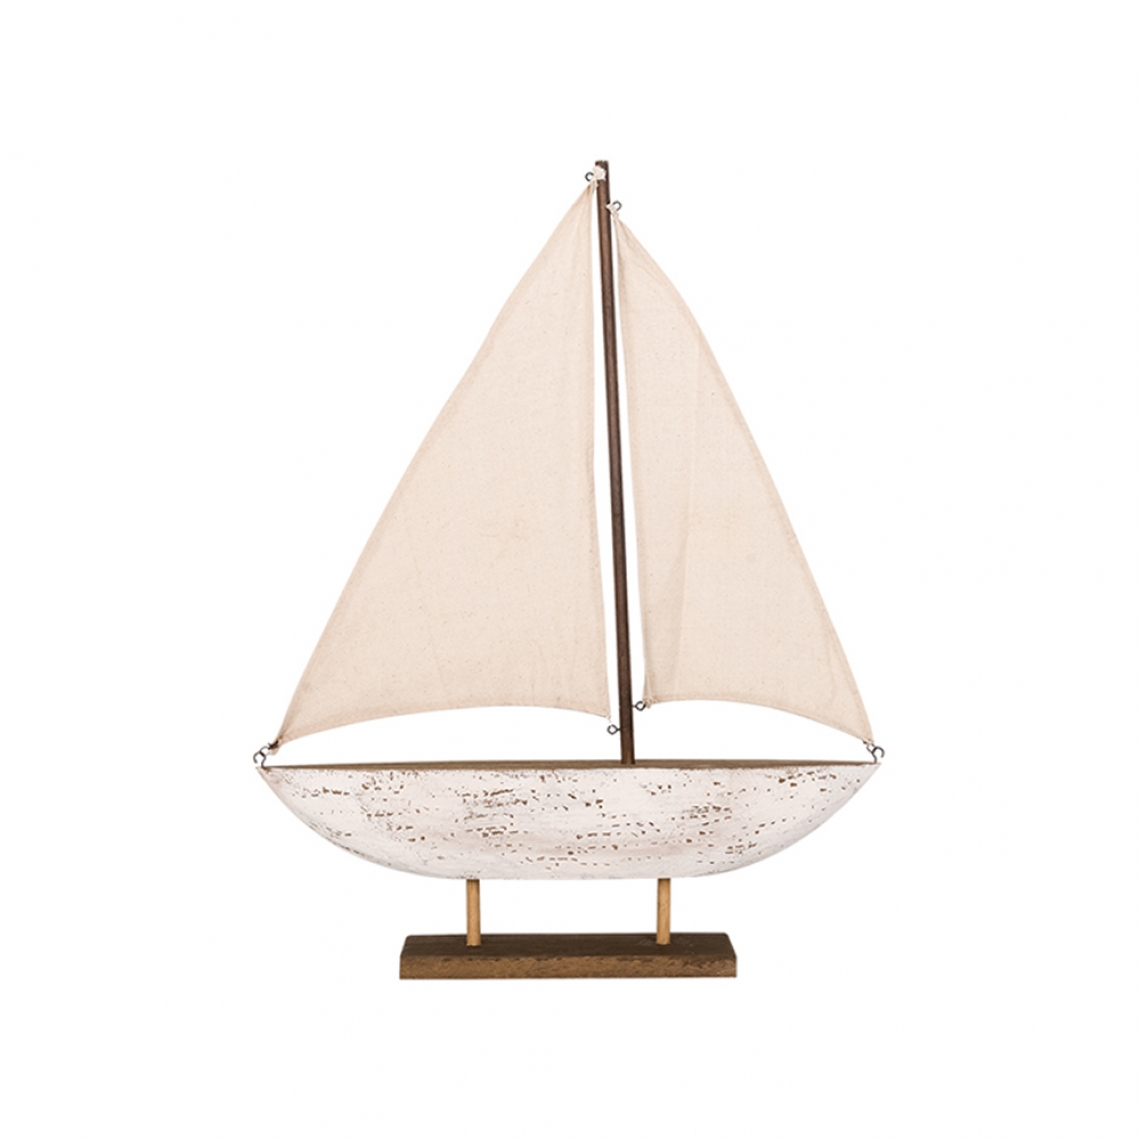 Wooden sailboat with base